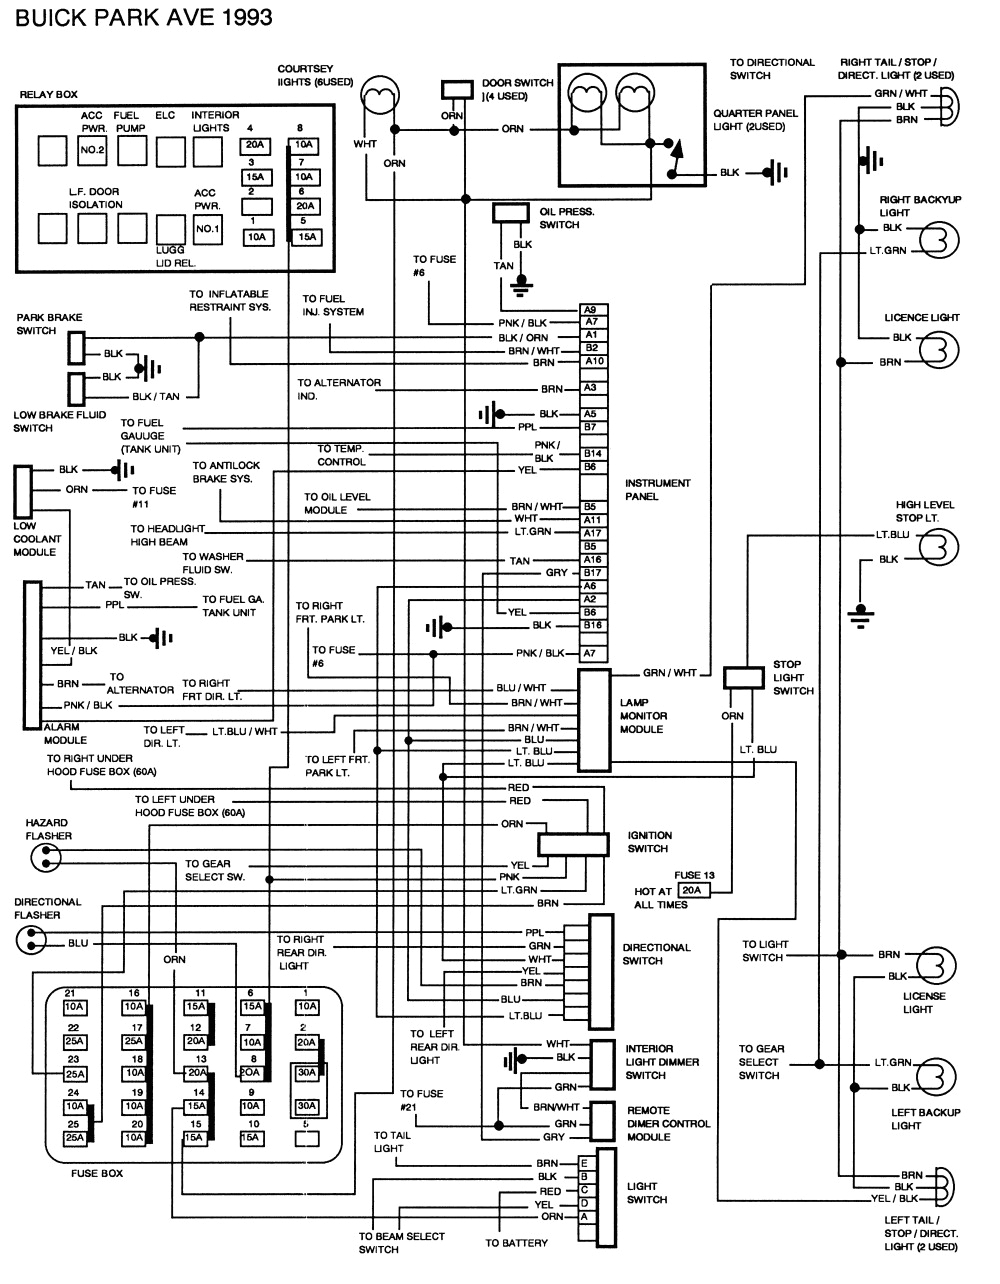 2000 buick lesabre wiring diagram 1 tearing 1997 for 2000 buick lesabre wiring diagram gif